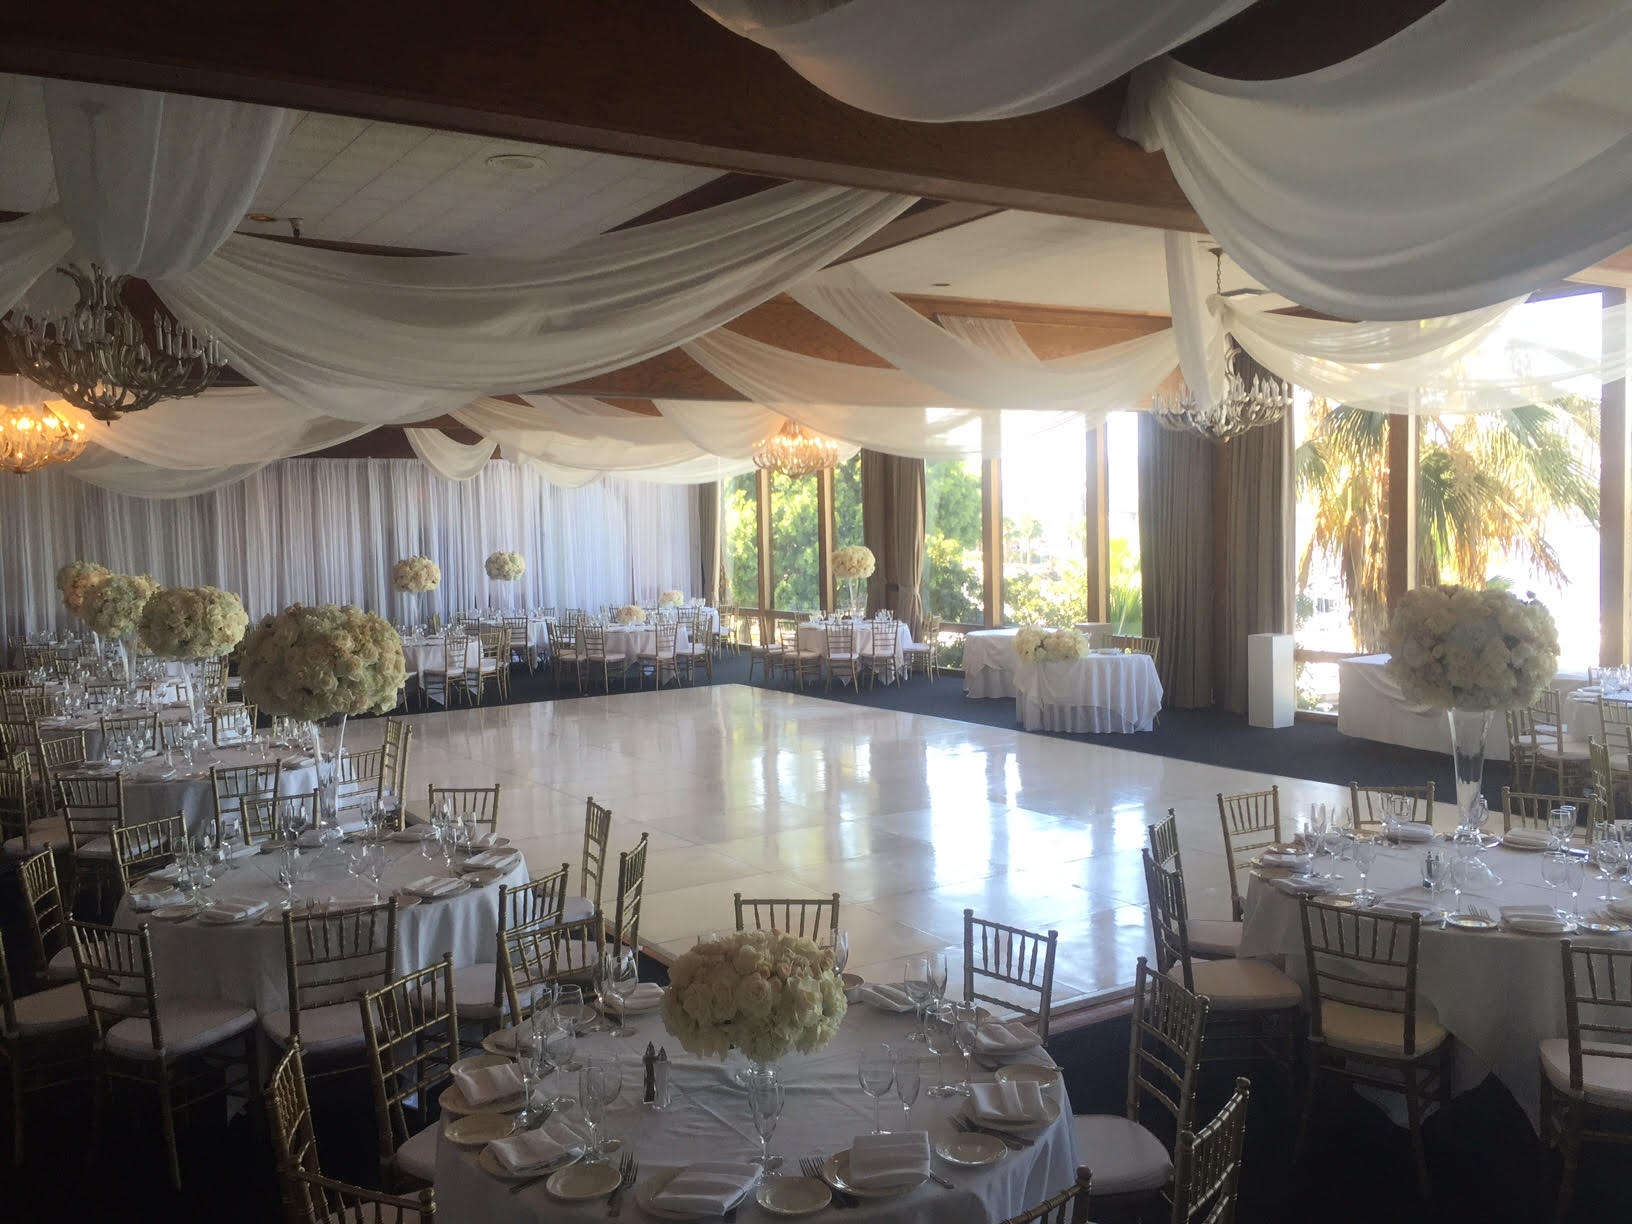 chair rentals long beach ca wrought iron glass top table and chairs wedding at the reef restaurant in 818 636 gold chiavari rental